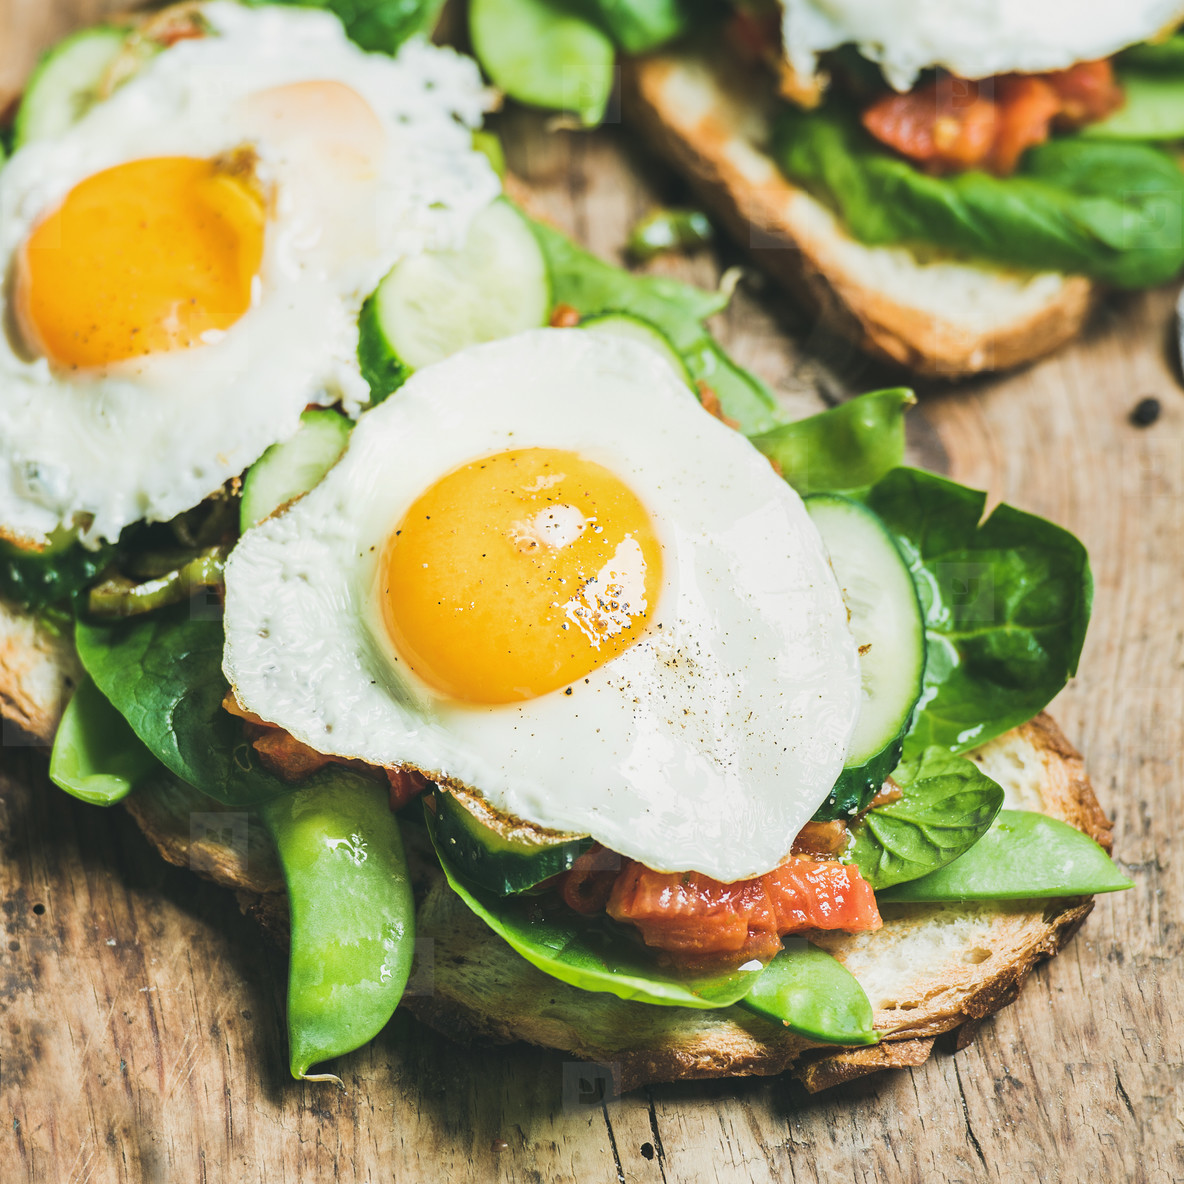 Healthy breakfast sandwiches on wooden board background  square crop